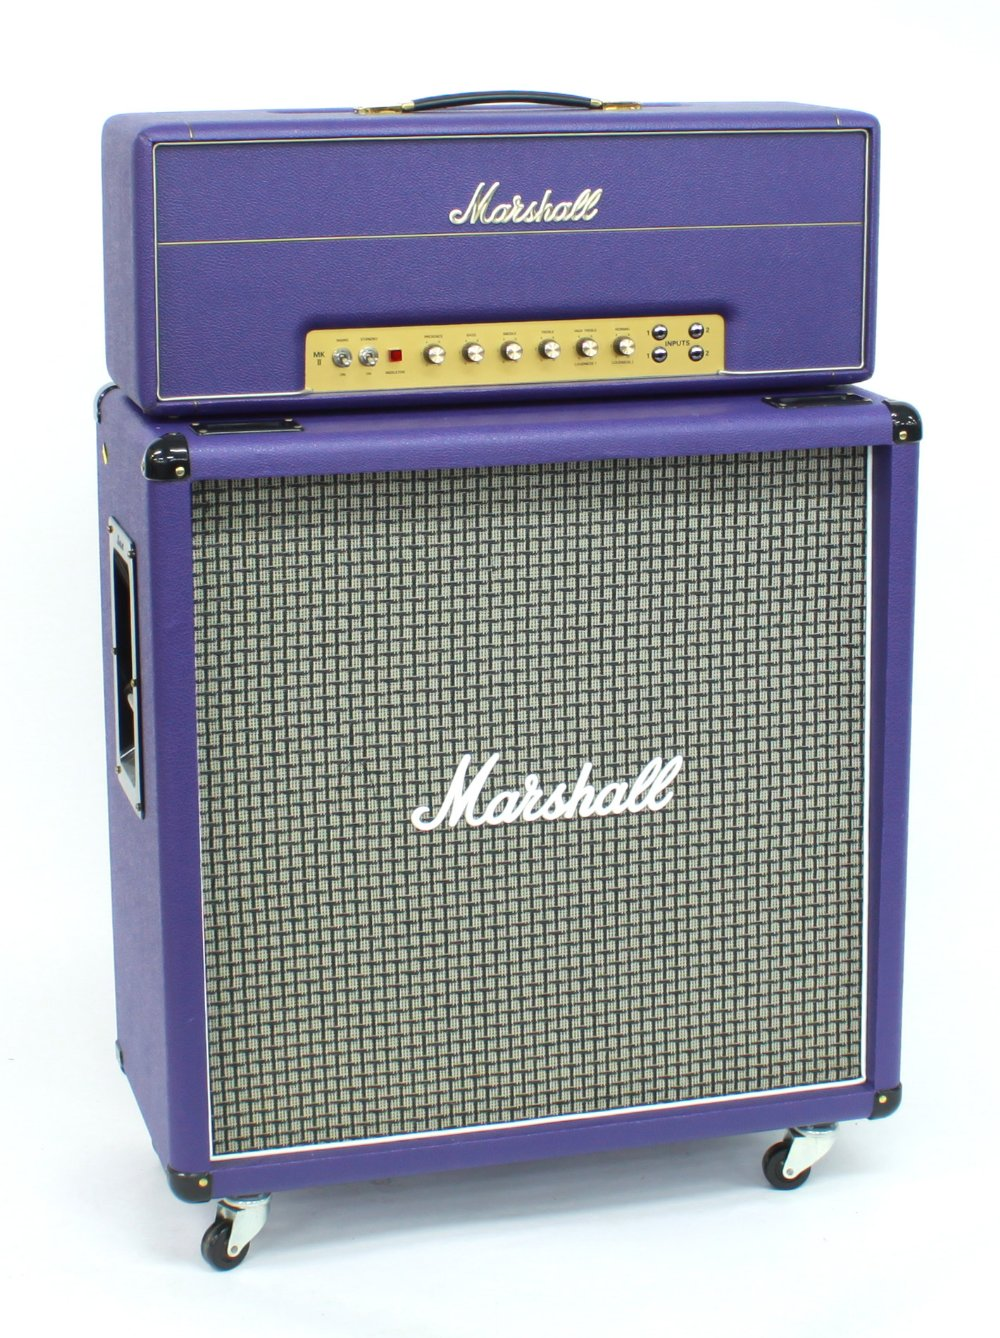 2007 Marshall Model 1959SLP Super Lead 100w MKII guitar amplifier head, made in England, with purple